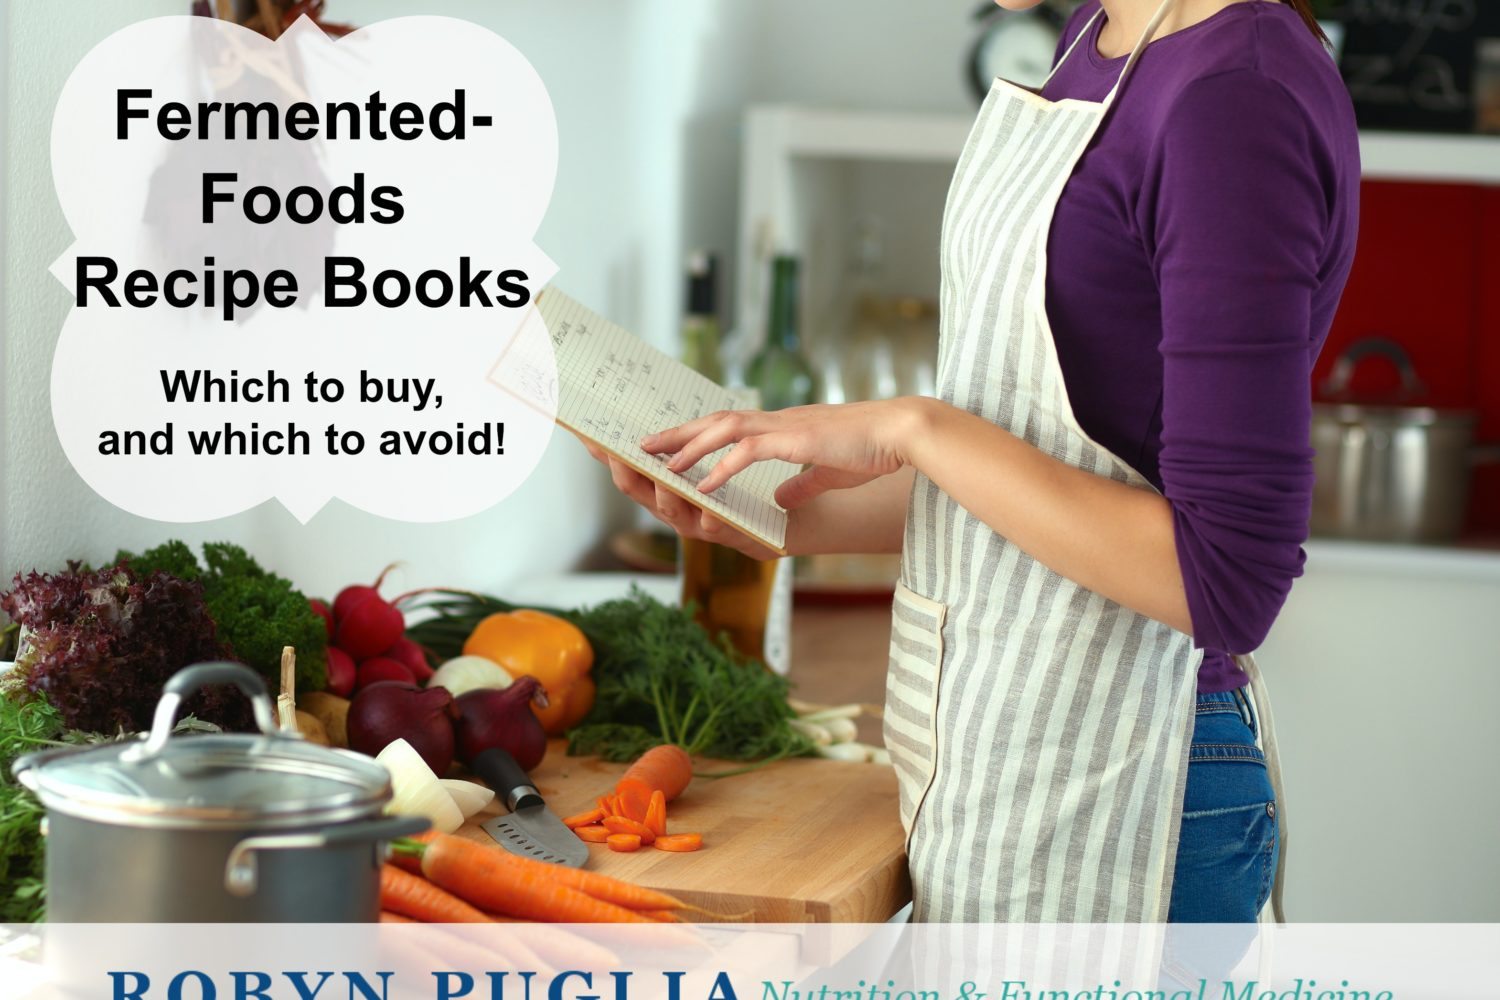 Fermented Foods Recipe Books. which to buy and which to avoid.